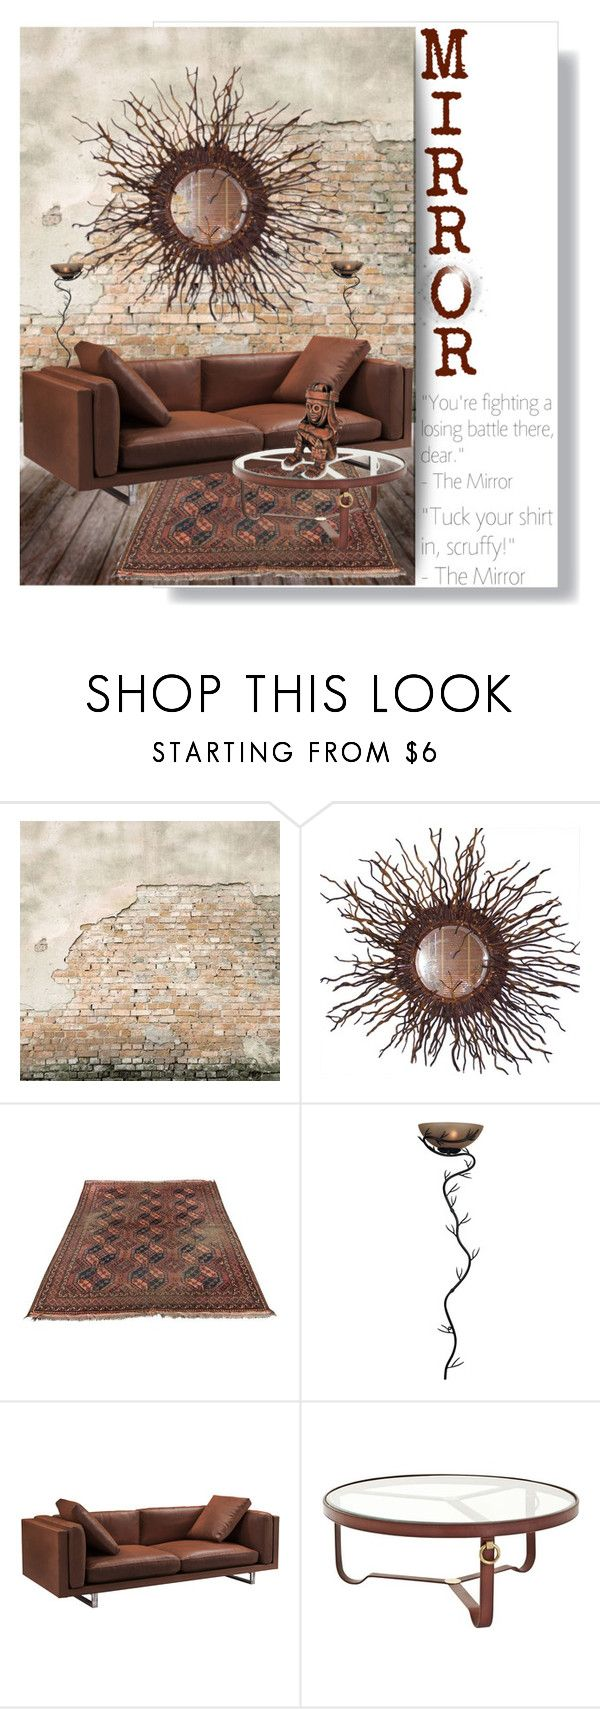 """""""Mirror, Mirror"""" by jesking ❤ liked on Polyvore featuring interior, interiors, interior design, home, home decor, interior decorating, WALL, Kenroy Home, Modloft and NOVICA"""